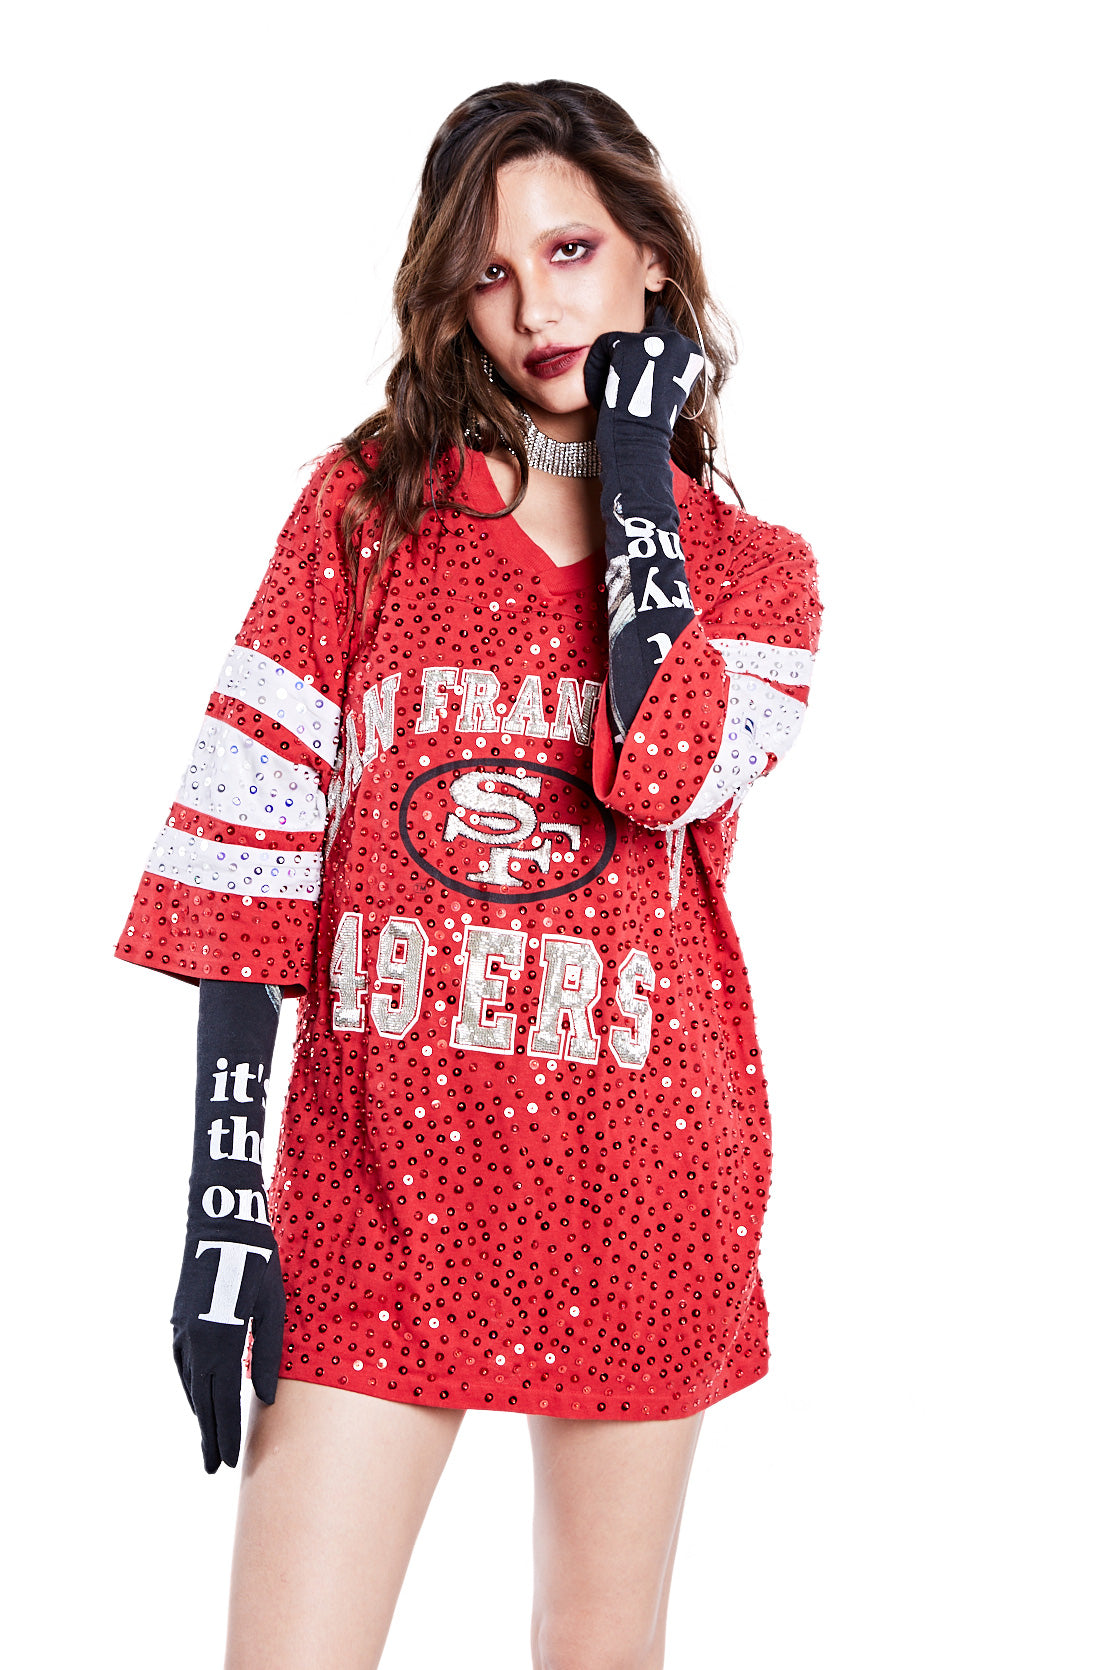 American Football Jersey Top - San Francisco 49ers - I LOVE DIY by Panida